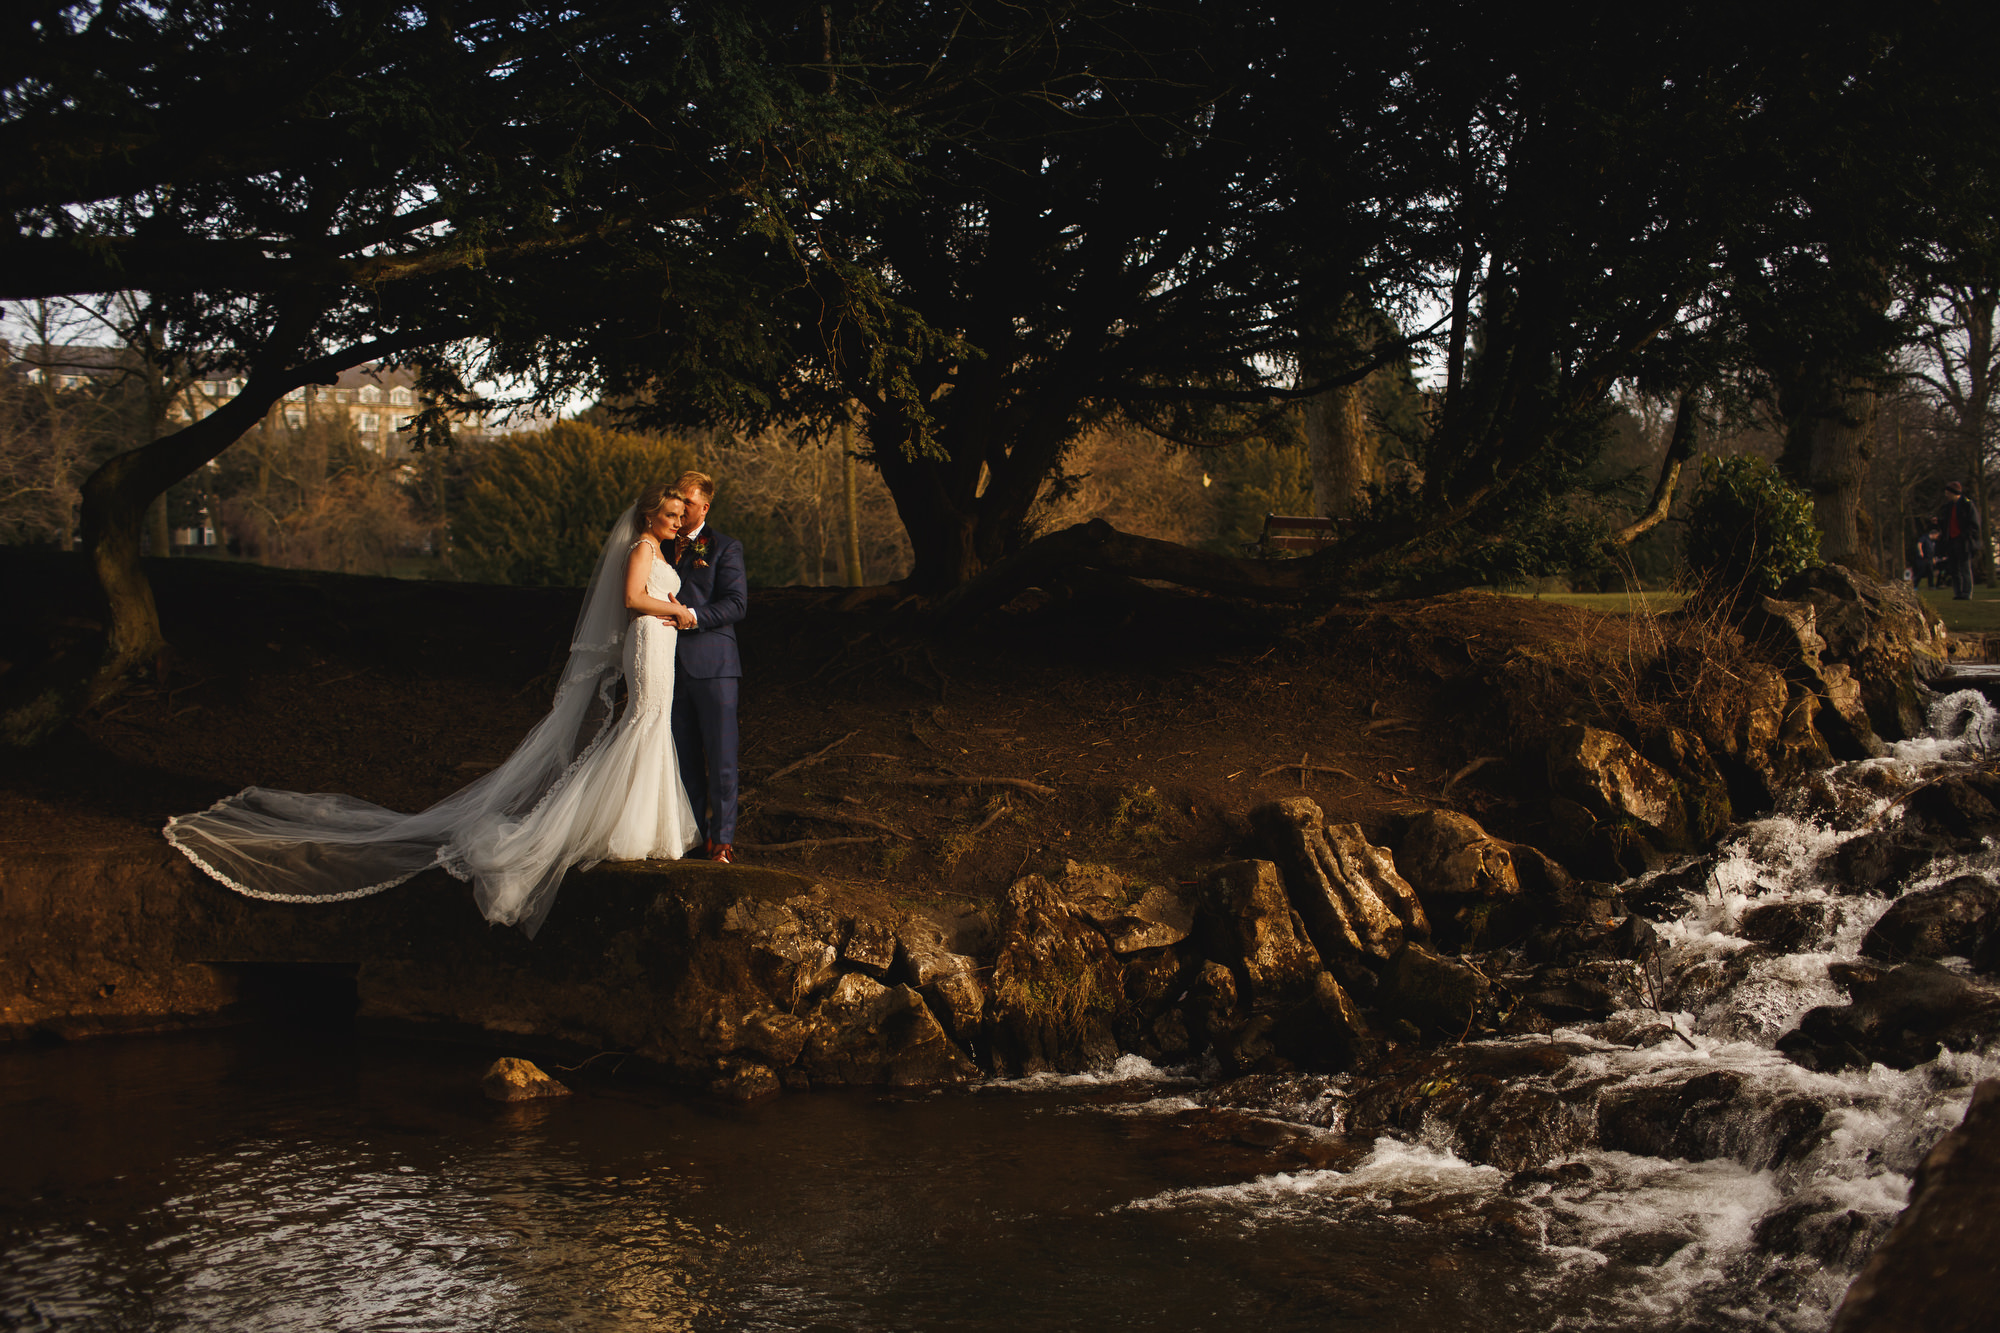 Peak District Wedding Photographer - ARJ Photography